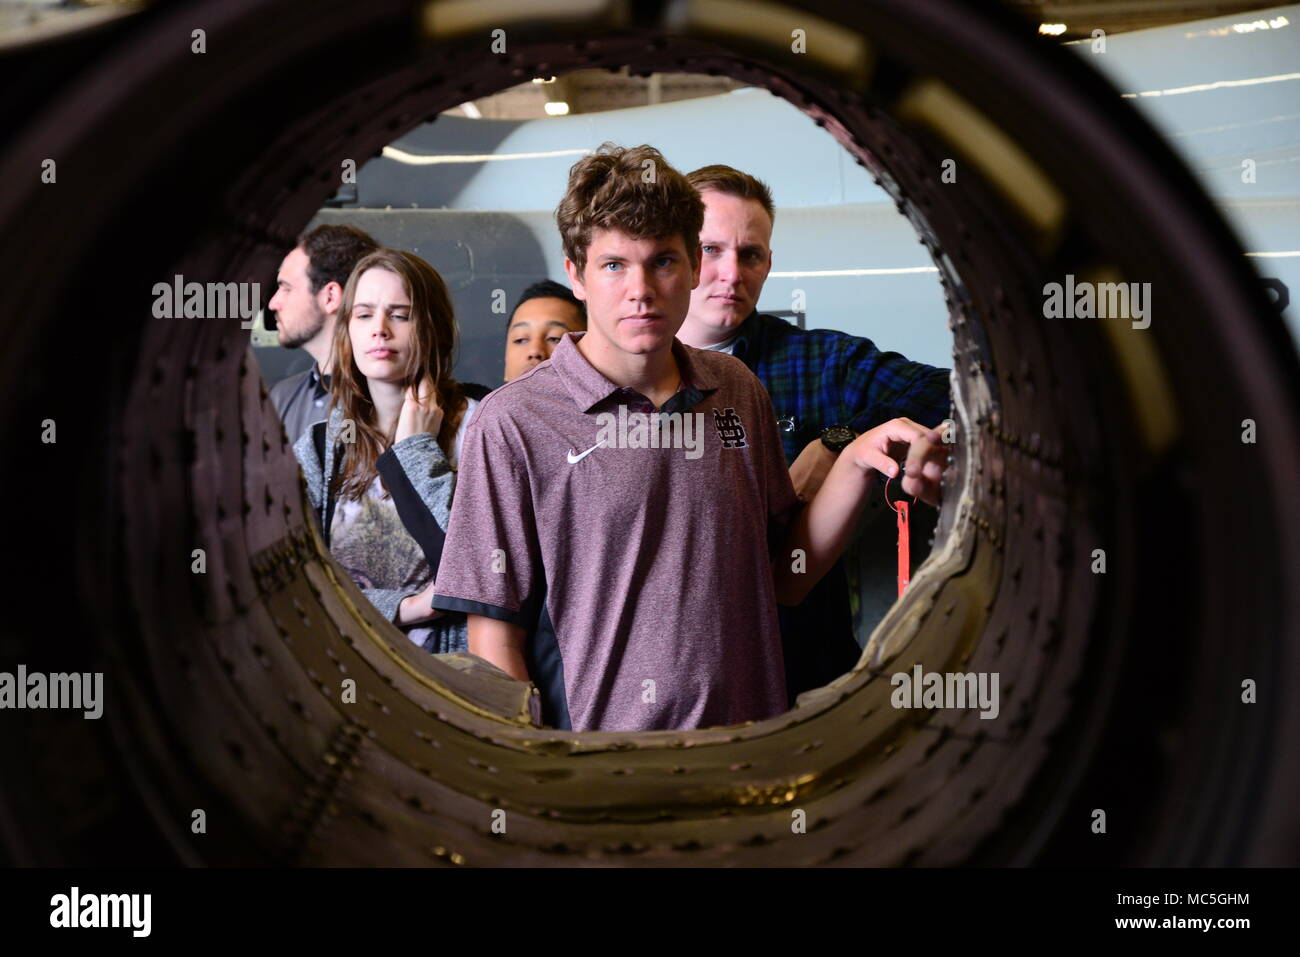 David Mongeau, a Mississippi State University Aircraft Propulsion student, examines the shell of a T-38C Talon engine April 4, 2018, on Columbus Air Force Base, Mississippi. An aerospace engineering student will spend over 1,000 hours in their classroom learning the different components of aircraft. (U.S. Air Force photo by Airman 1st Class Beaux Hebert) - Stock Image